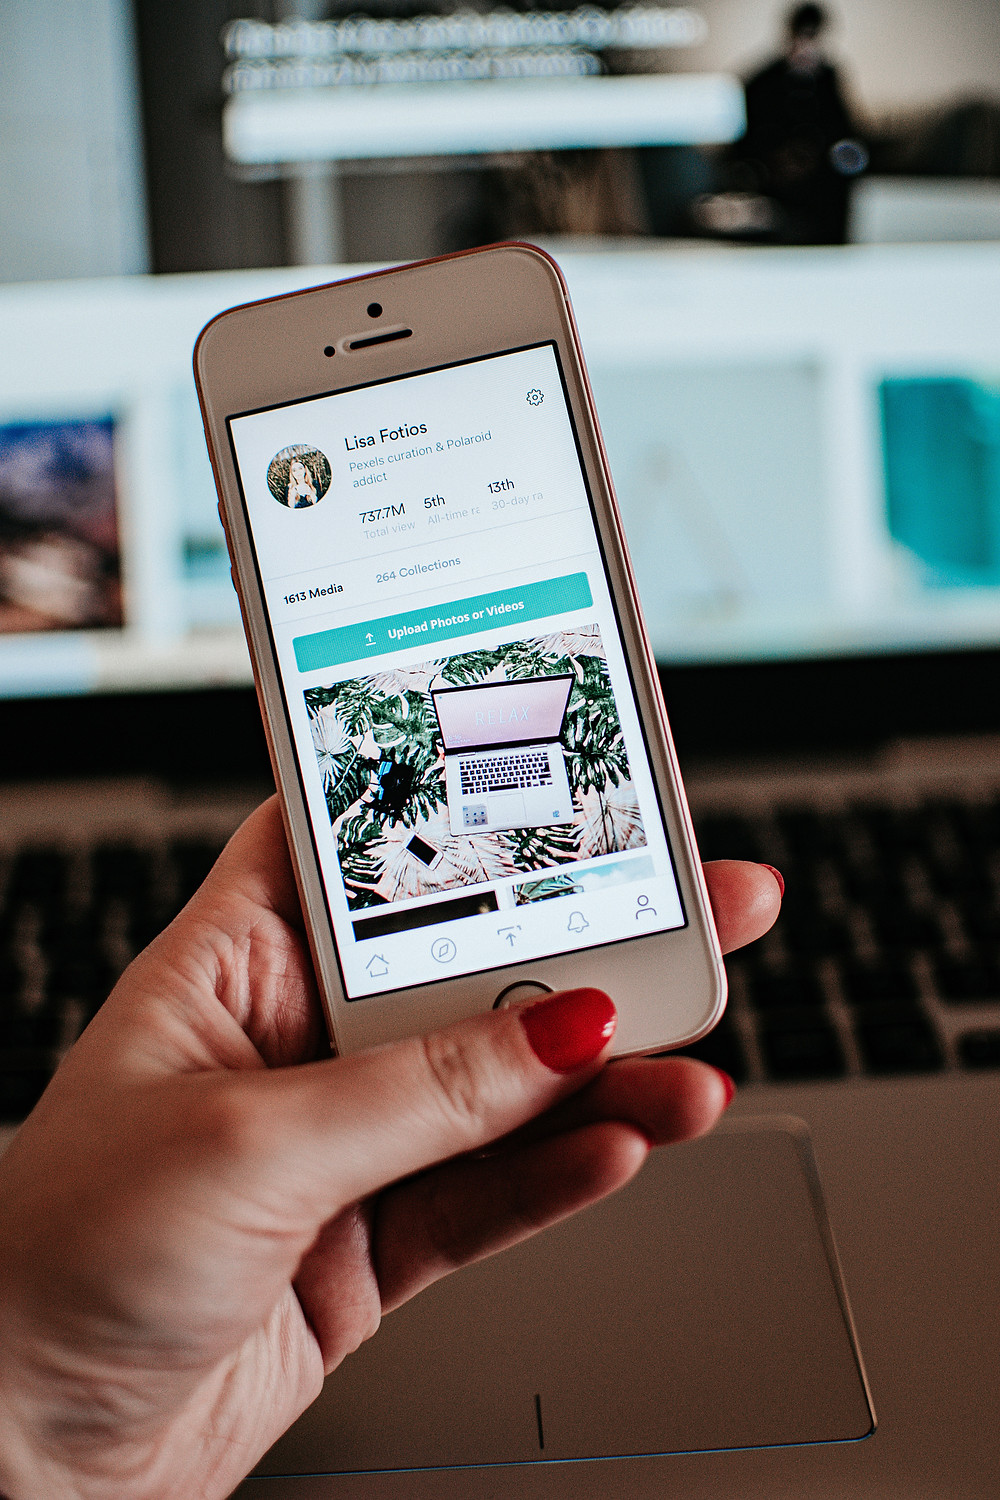 A marketer looks at an image on Pexels, as part of a multi-channel approach.